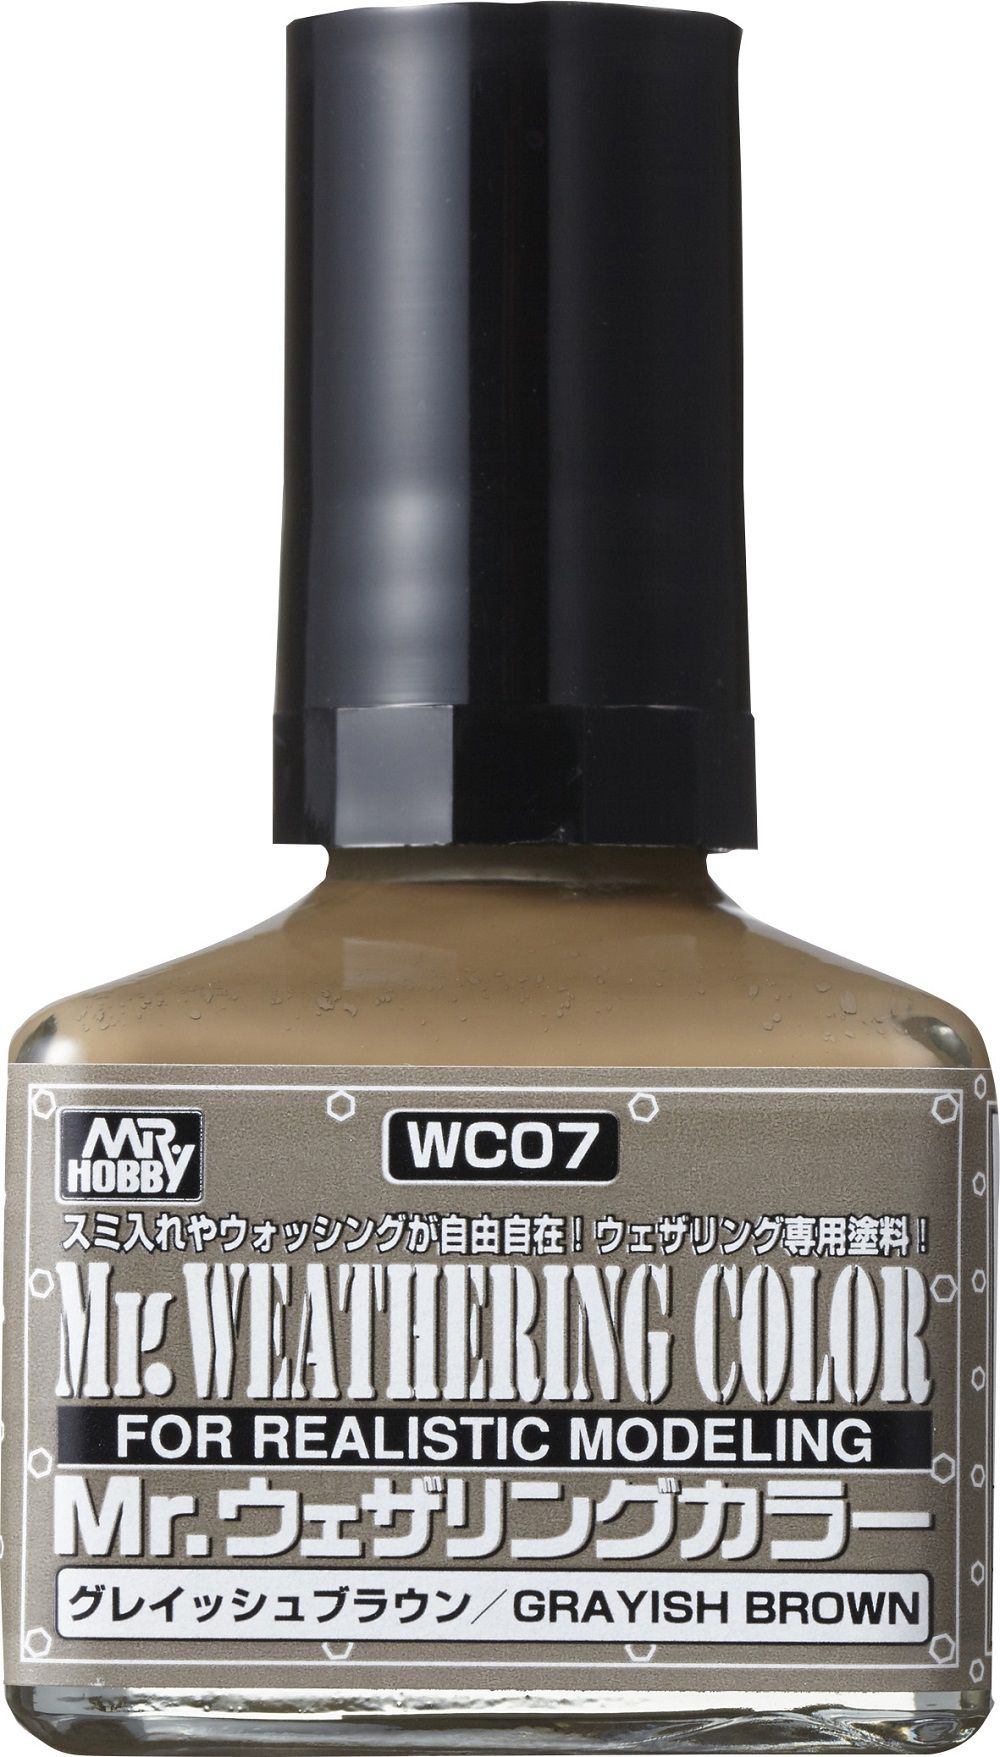 How to use Mr Weathering Color